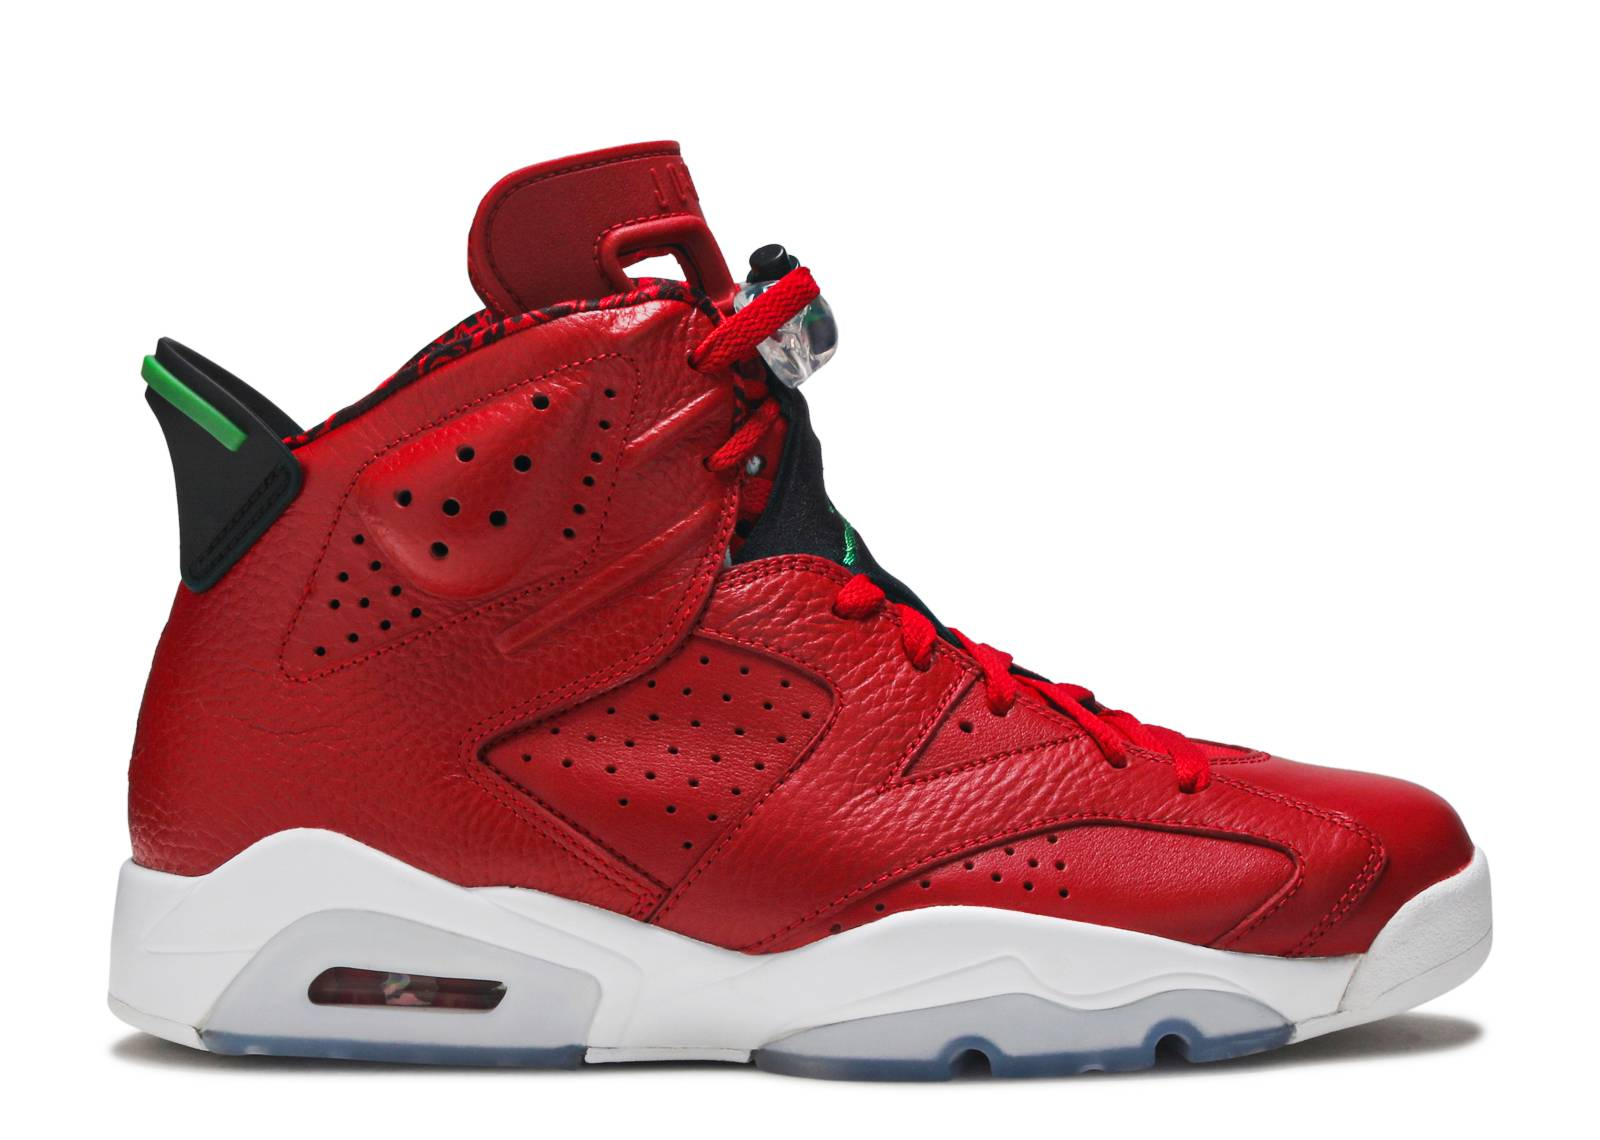 uk availability 8807f 2982e Spiz´ike - Air Jordans | Flight Club